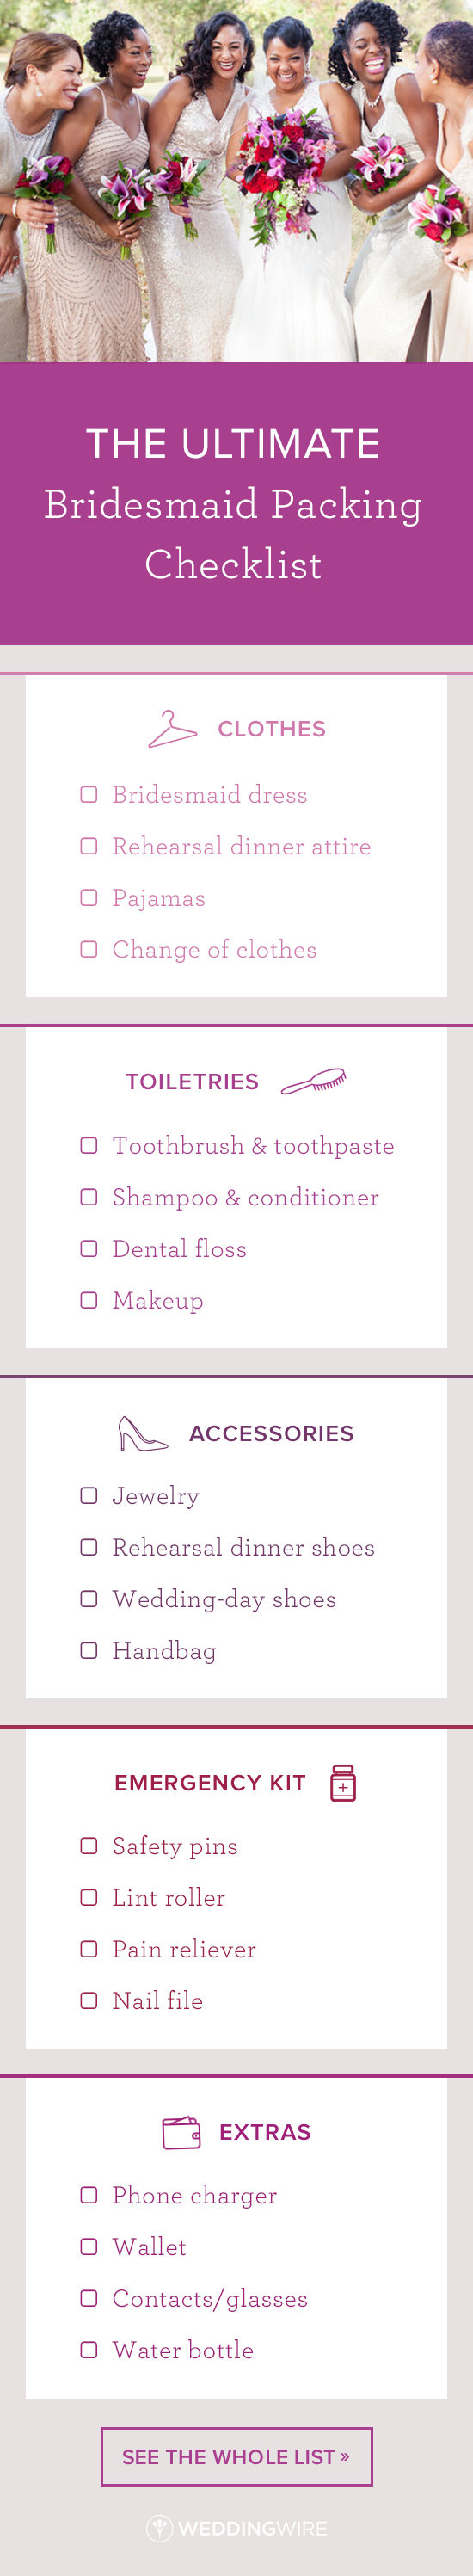 The Ultimate Bridesmaid Packing Checklist Wedding